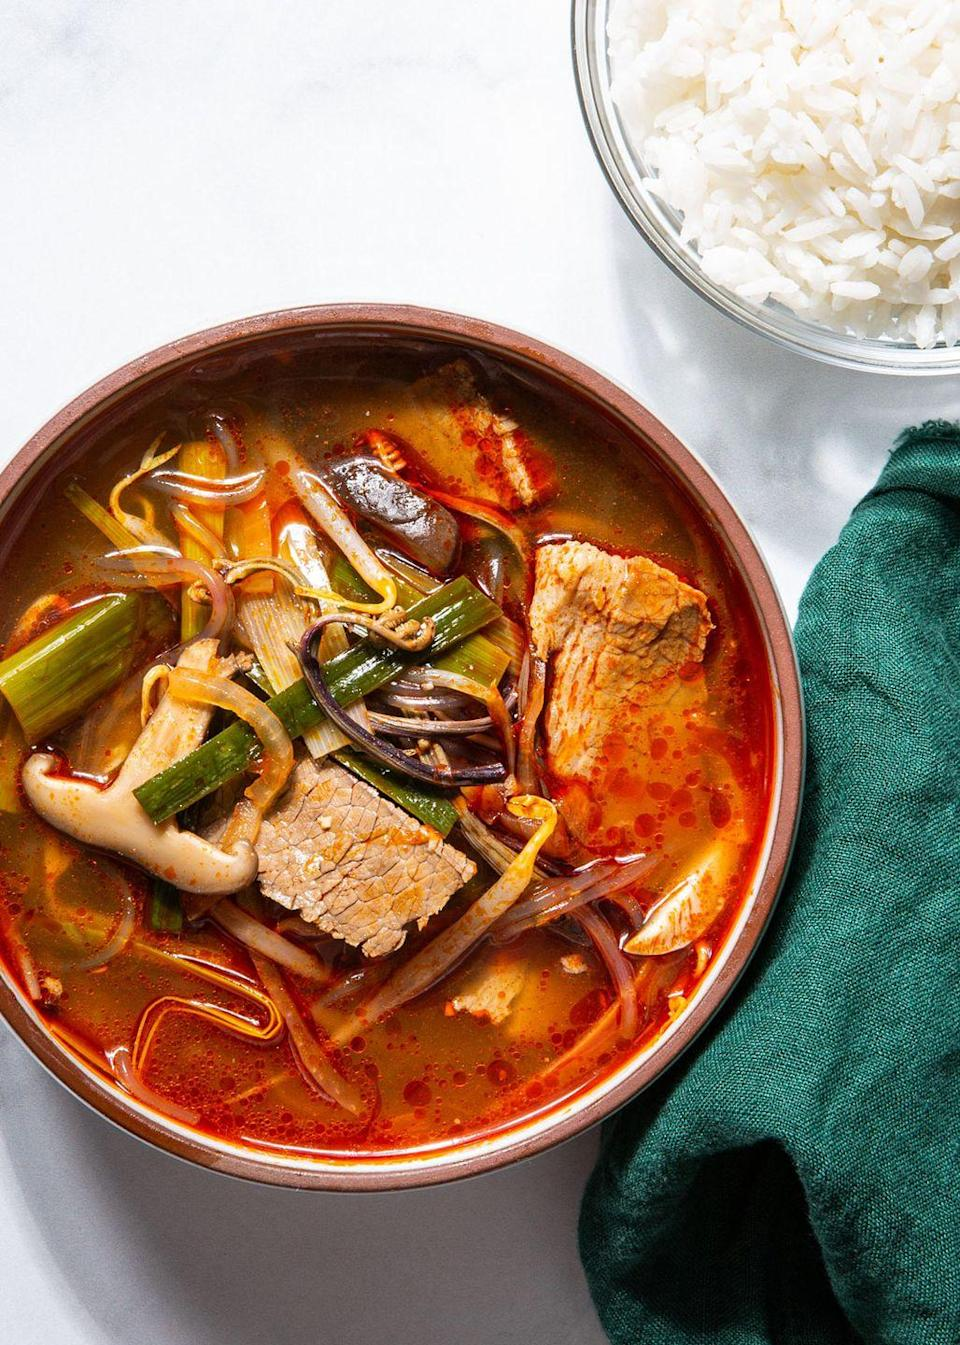 """<p>If you haven't had it, it's life changing. If you have had it, you have dreamed about making it at home.</p><p>Get the recipe from <a href=""""https://www.delish.com/cooking/recipe-ideas/a35047733/korean-soup-yukgaejang-recipe/"""" rel=""""nofollow noopener"""" target=""""_blank"""" data-ylk=""""slk:Delish"""" class=""""link rapid-noclick-resp"""">Delish</a>.</p>"""